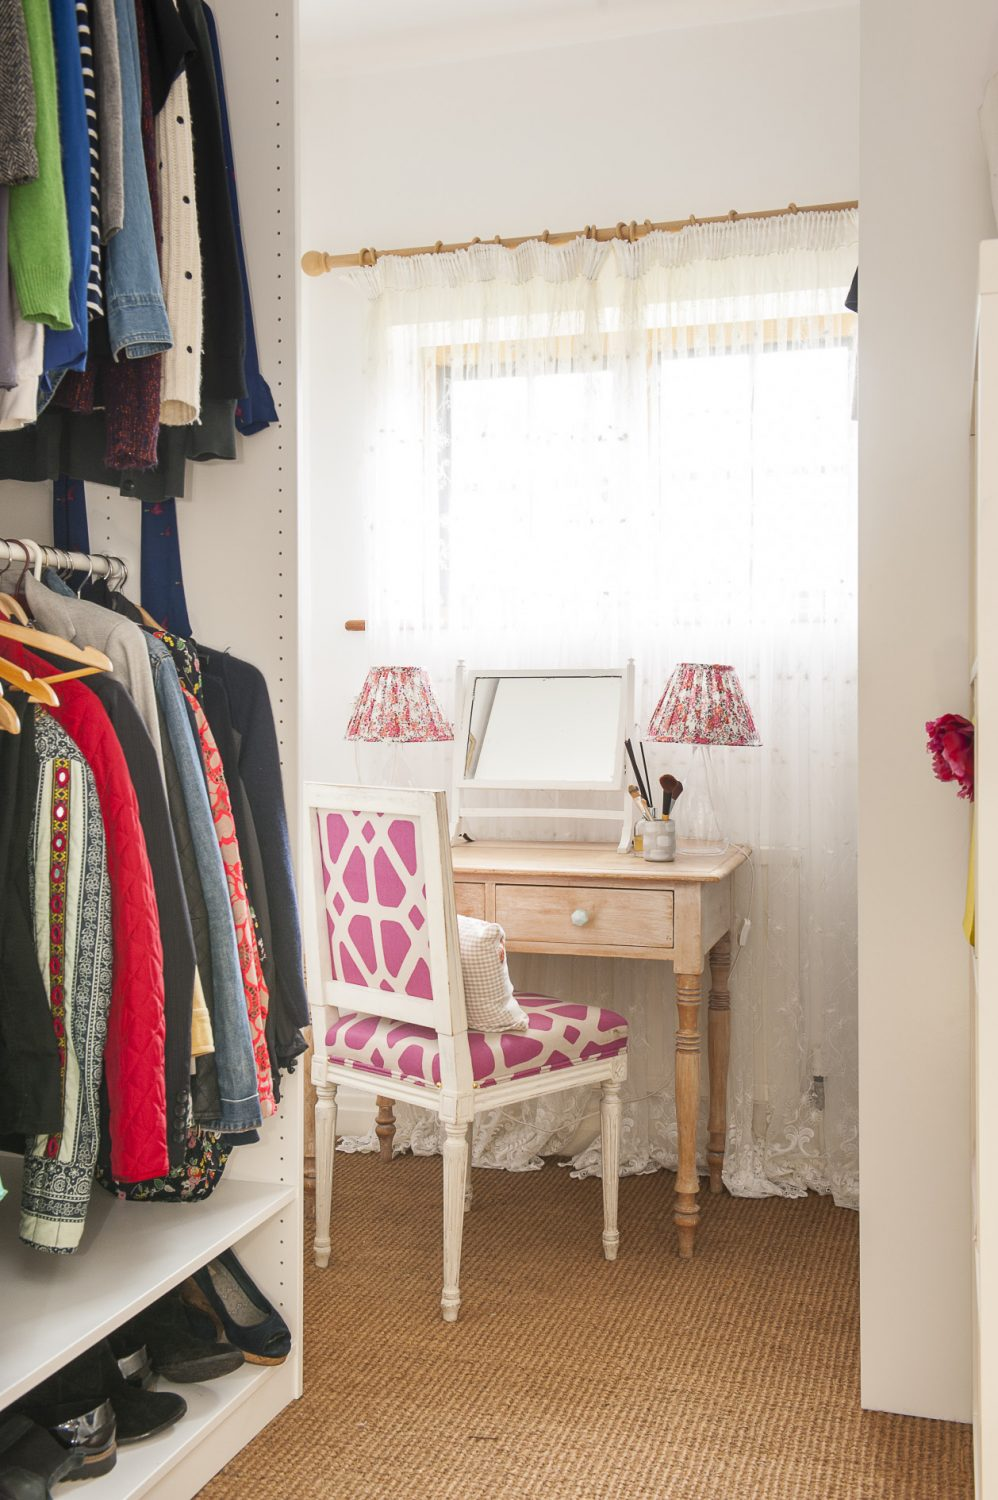 Although many of the rooms have been knocked through to create open-plan living, there are still intimate spaces such as this dressing room on the first floor